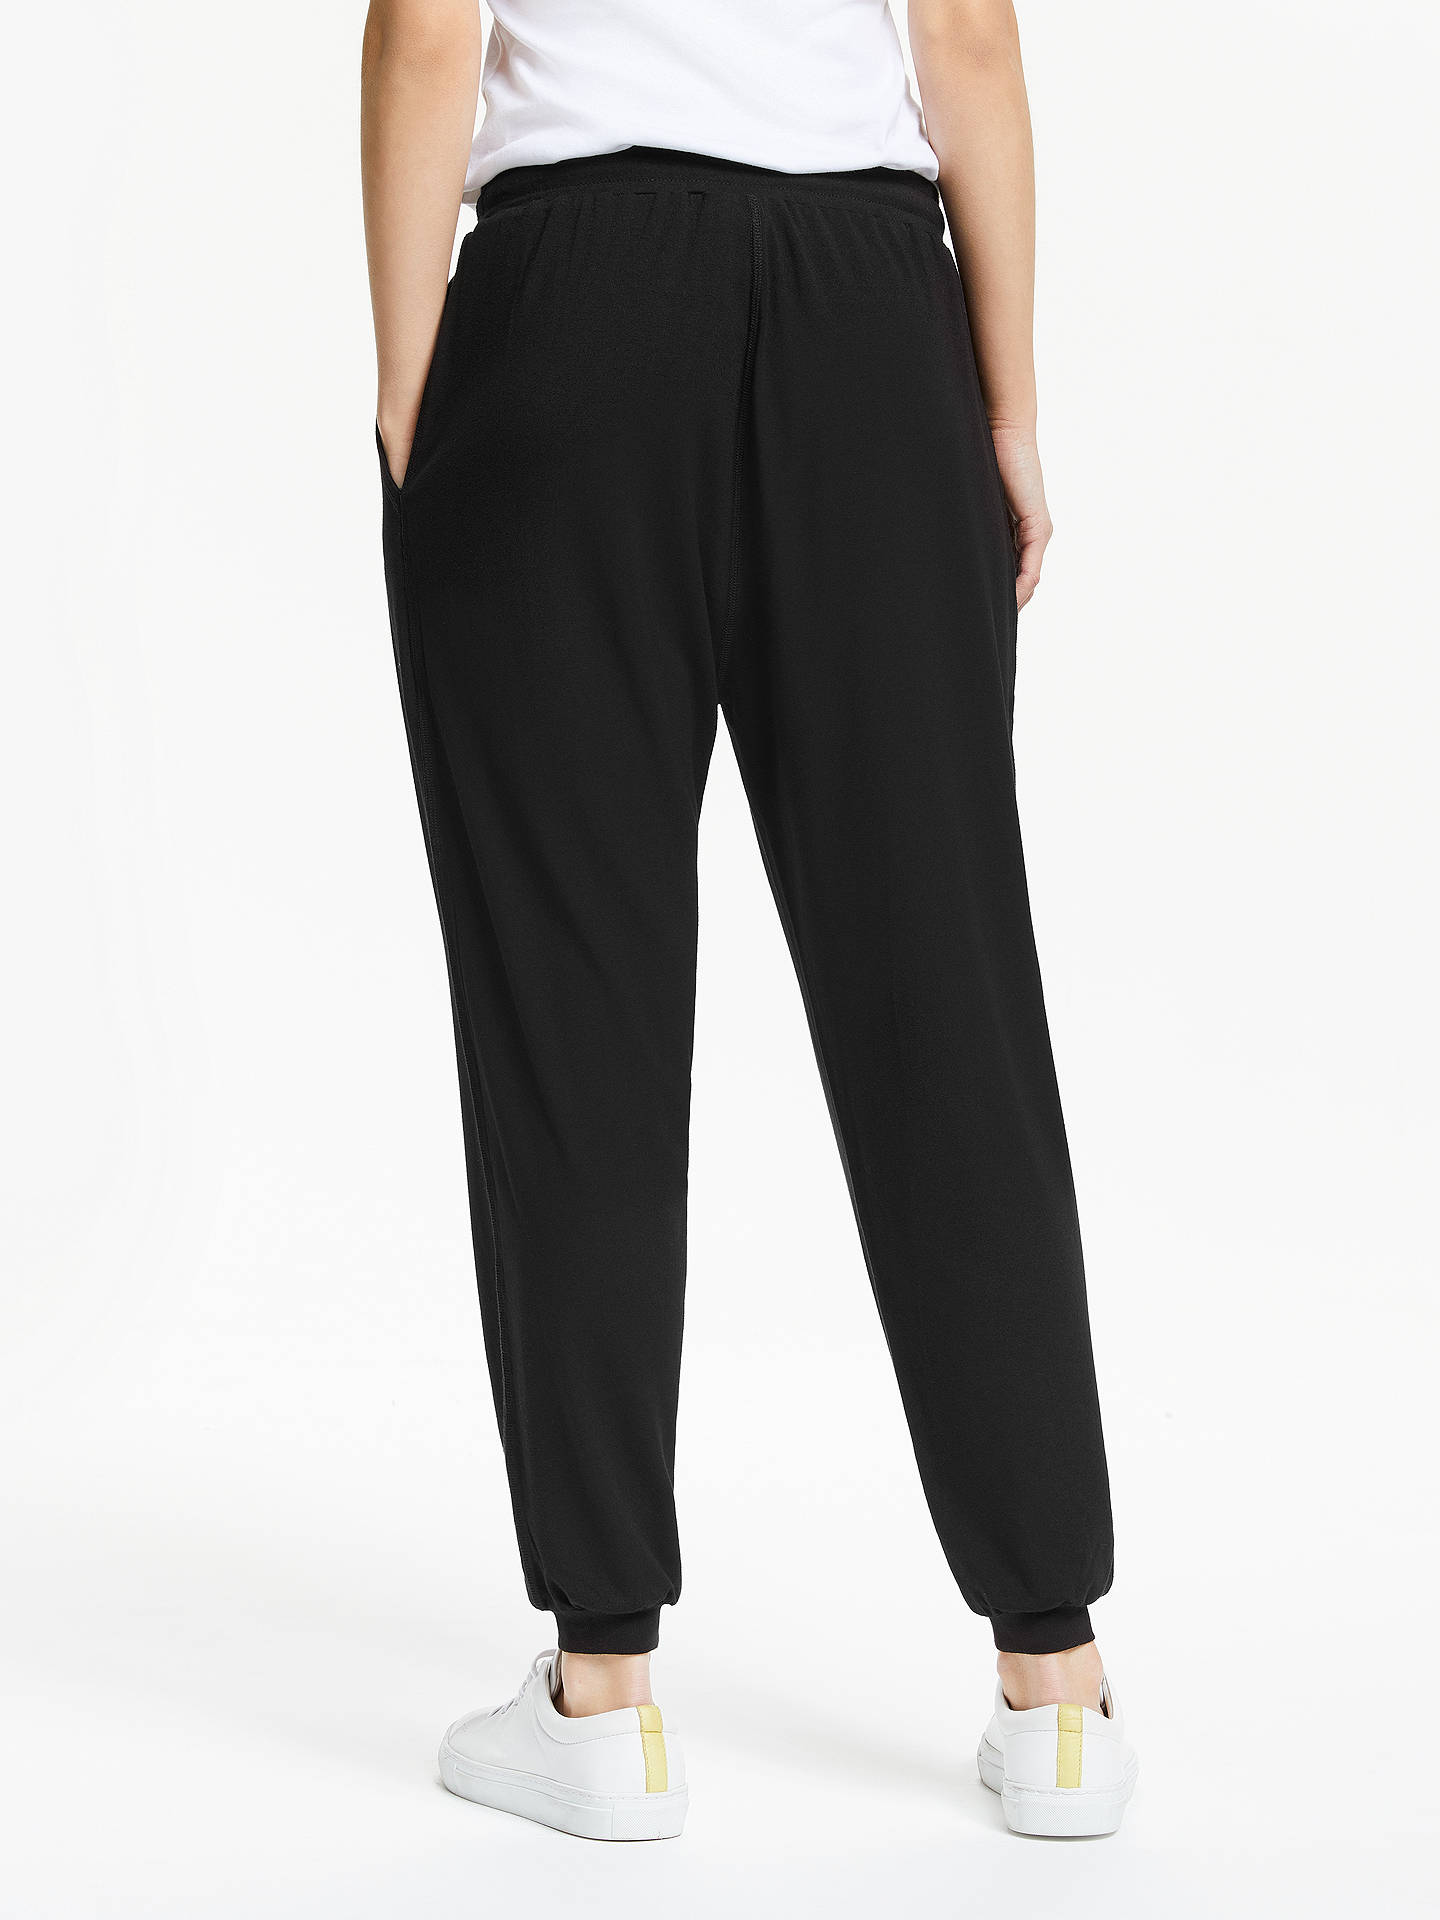 BuyThought Emerson Trousers, Black, 8 Online at johnlewis.com